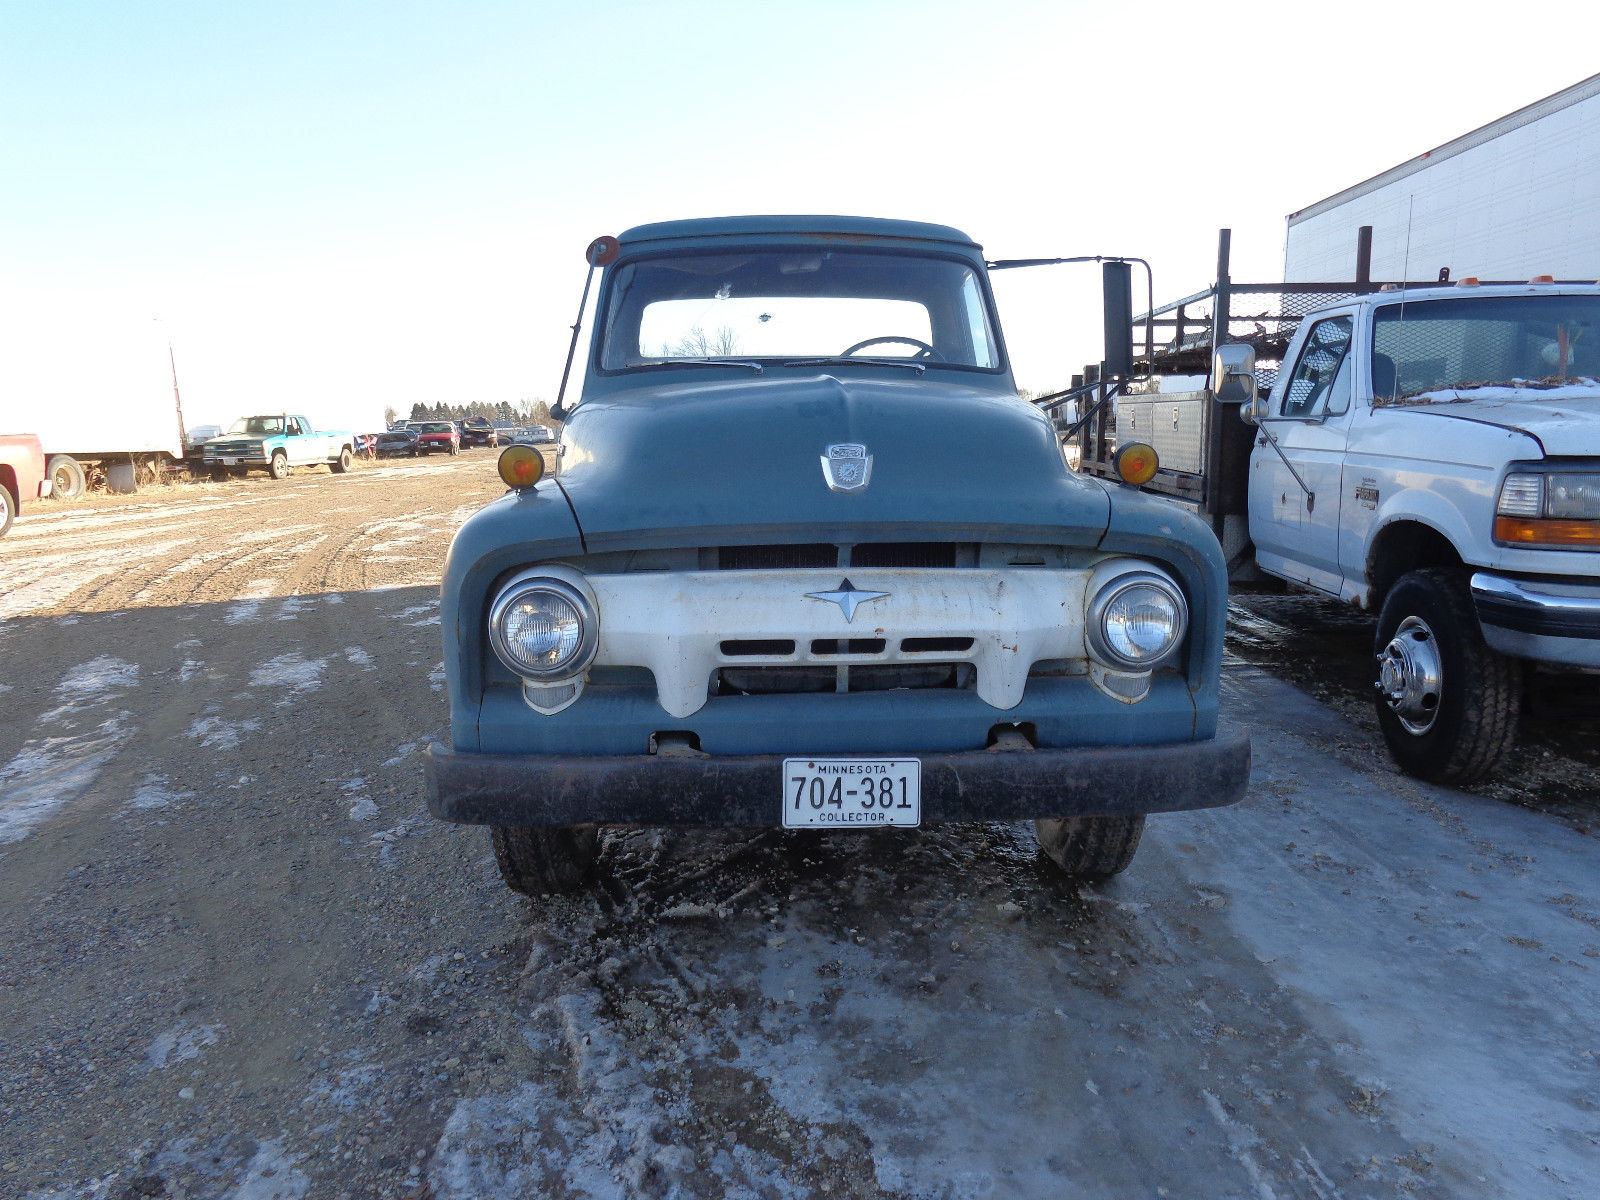 1954 Ford F 500 2 Ton Flatbed Truck Vintage Clean Commercial F100 4x4 Barn Find For Sale In Annandale Minnesota United States